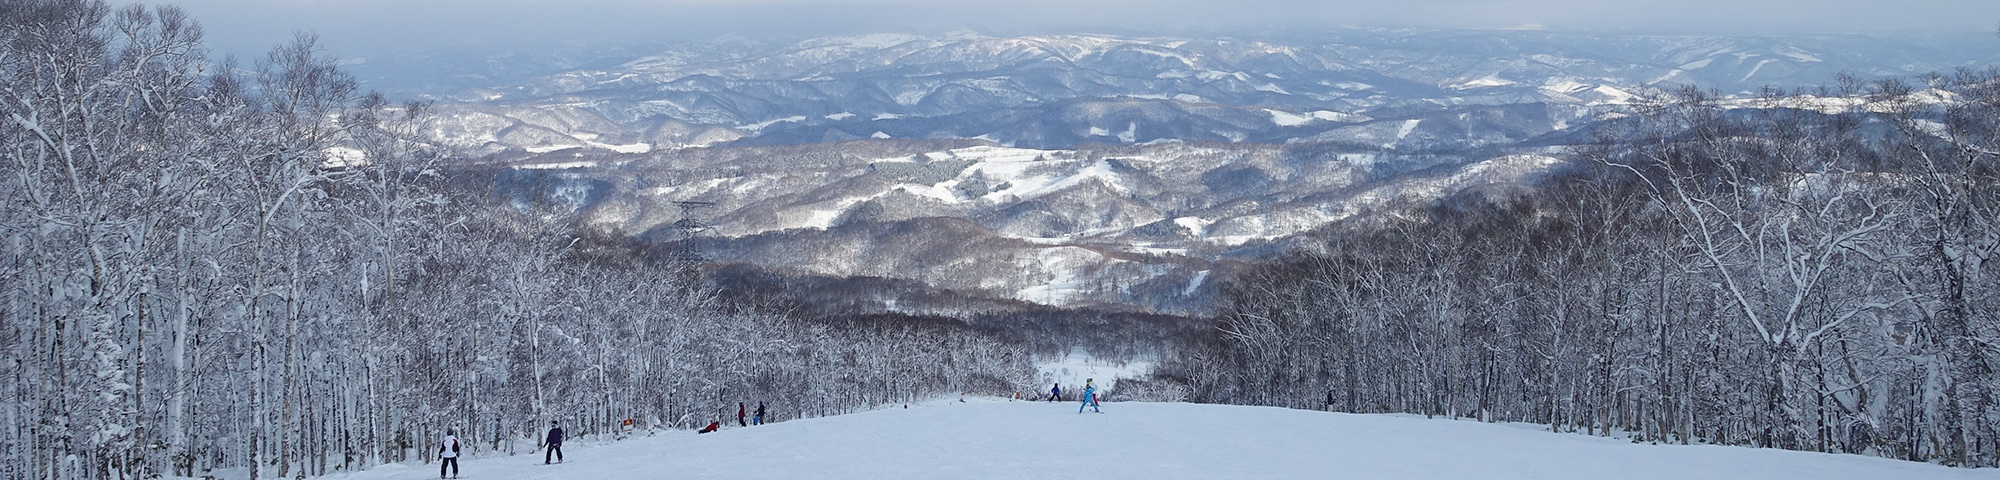 The 11 Best Japan Ski Resorts - UPDATED 2019/20